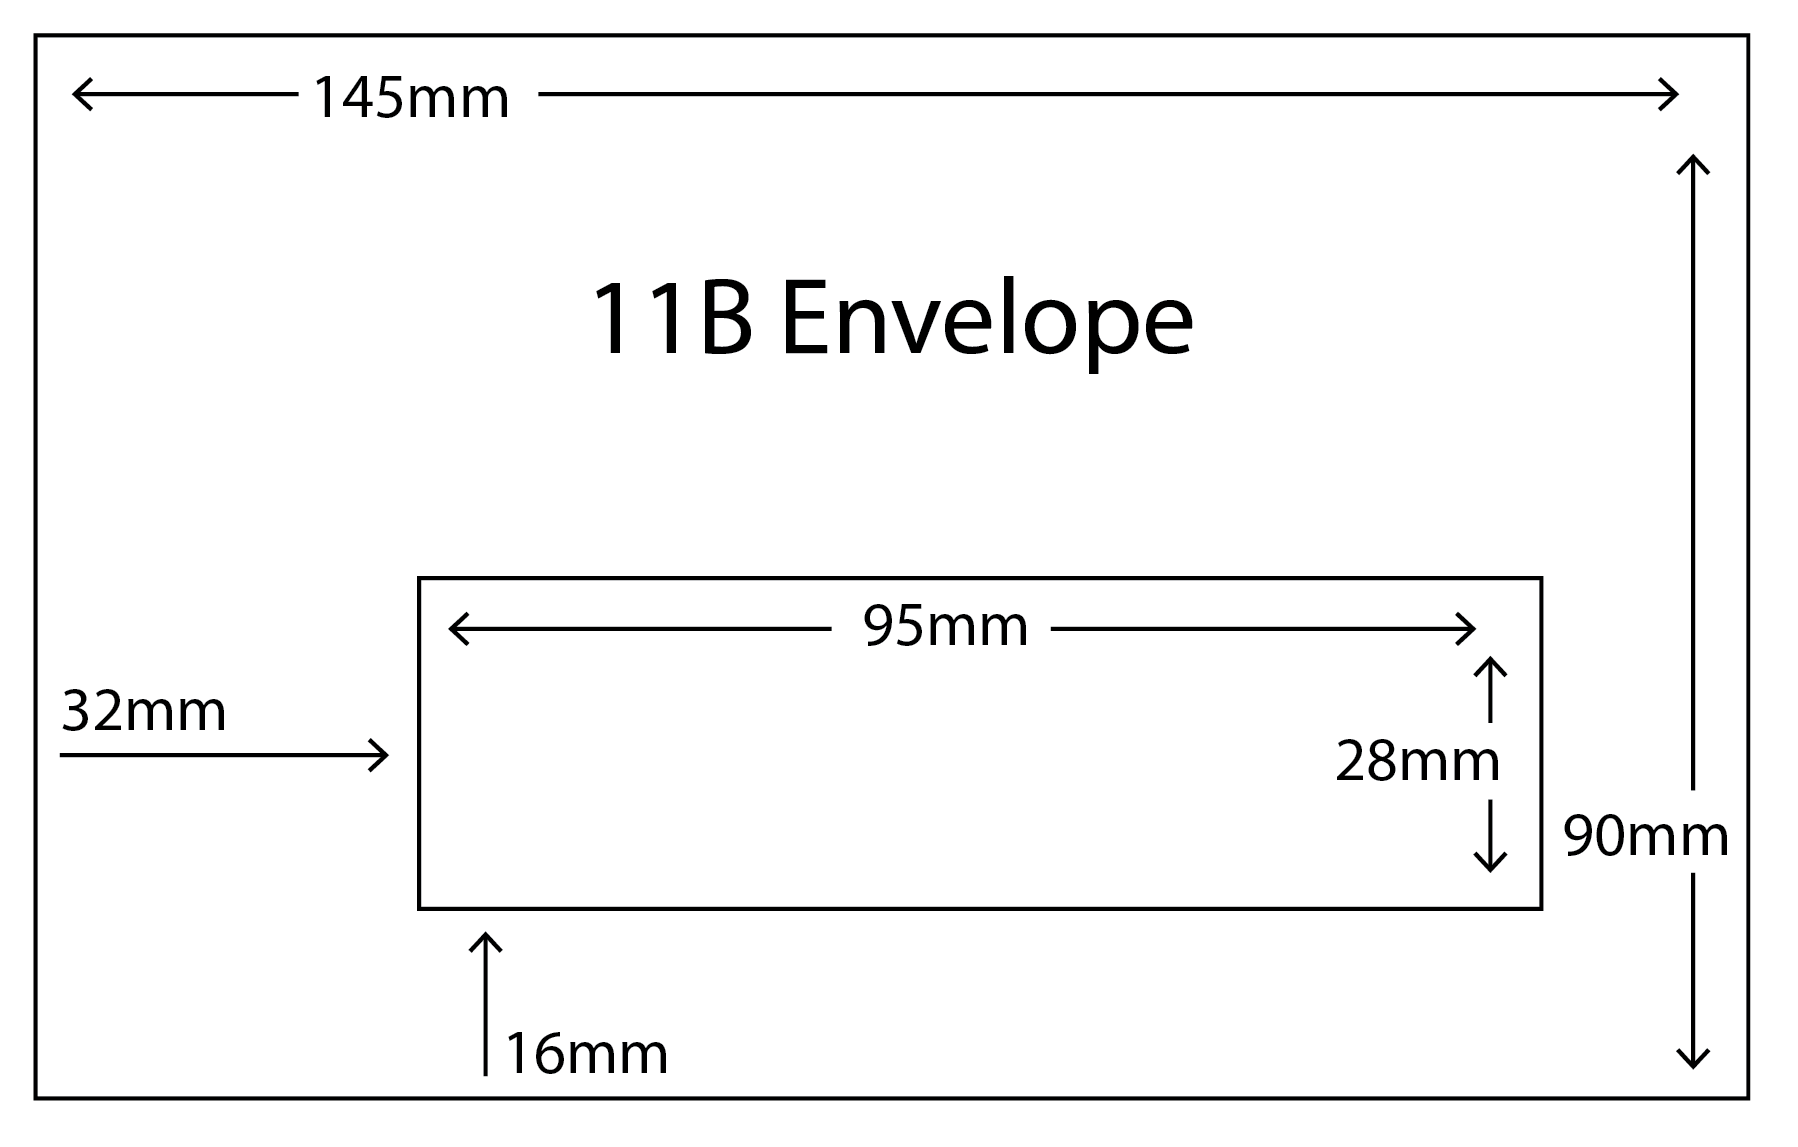 11B Envelope with standard window size